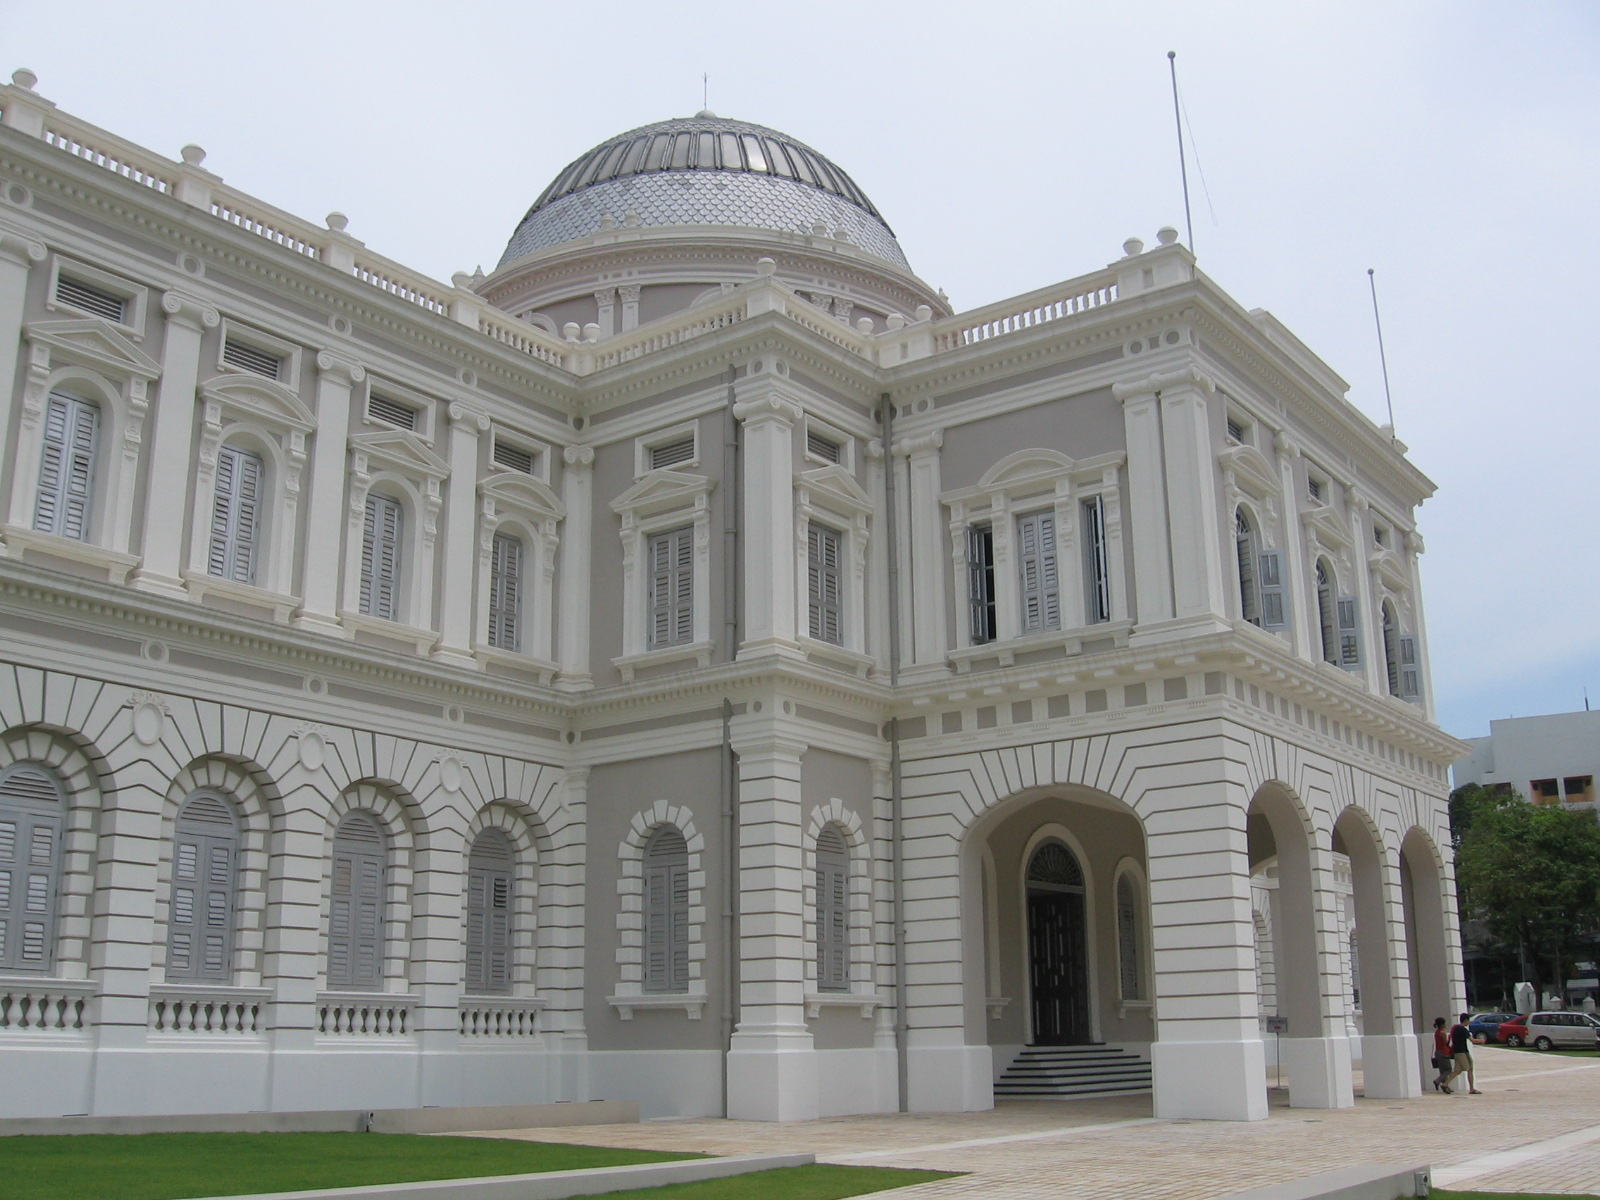 File:National Museum of Singapore 6, Aug 06.JPG - Wikipedia, the ...